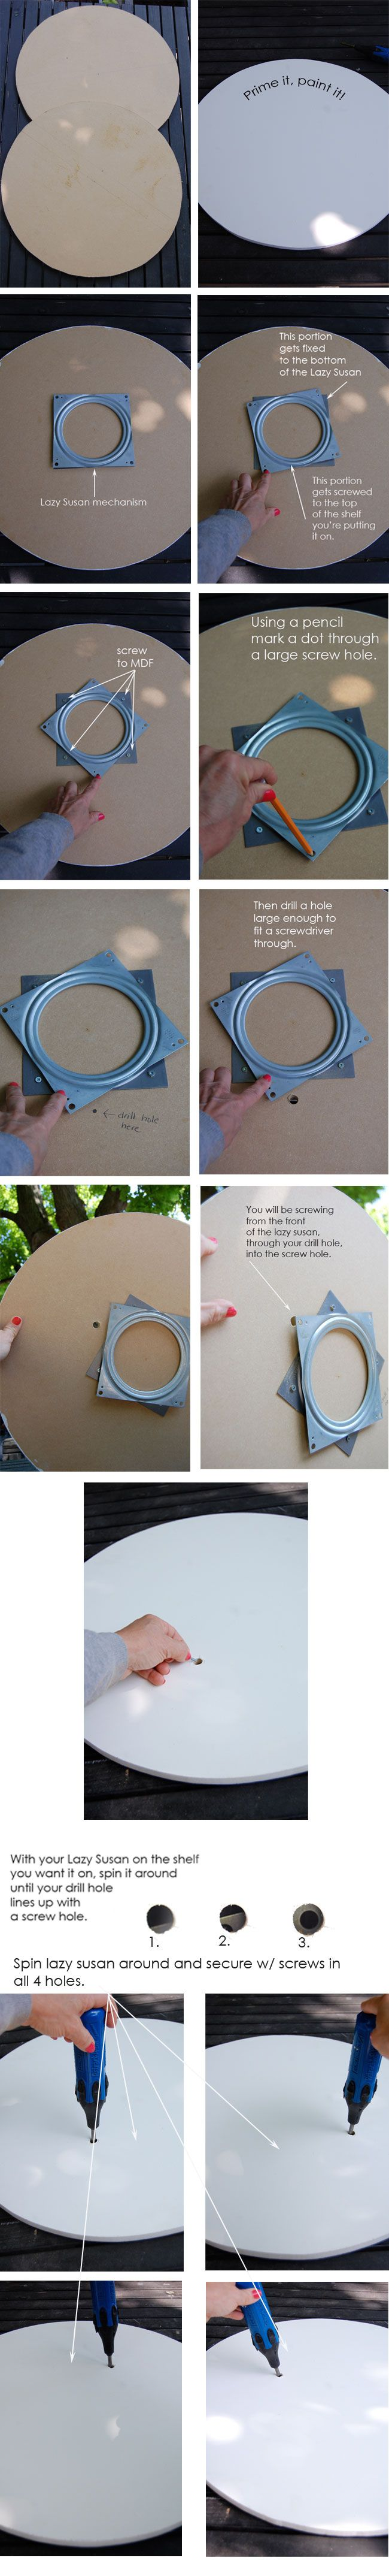 FINALLY instructions I can follow to finish up my Lazy Susan